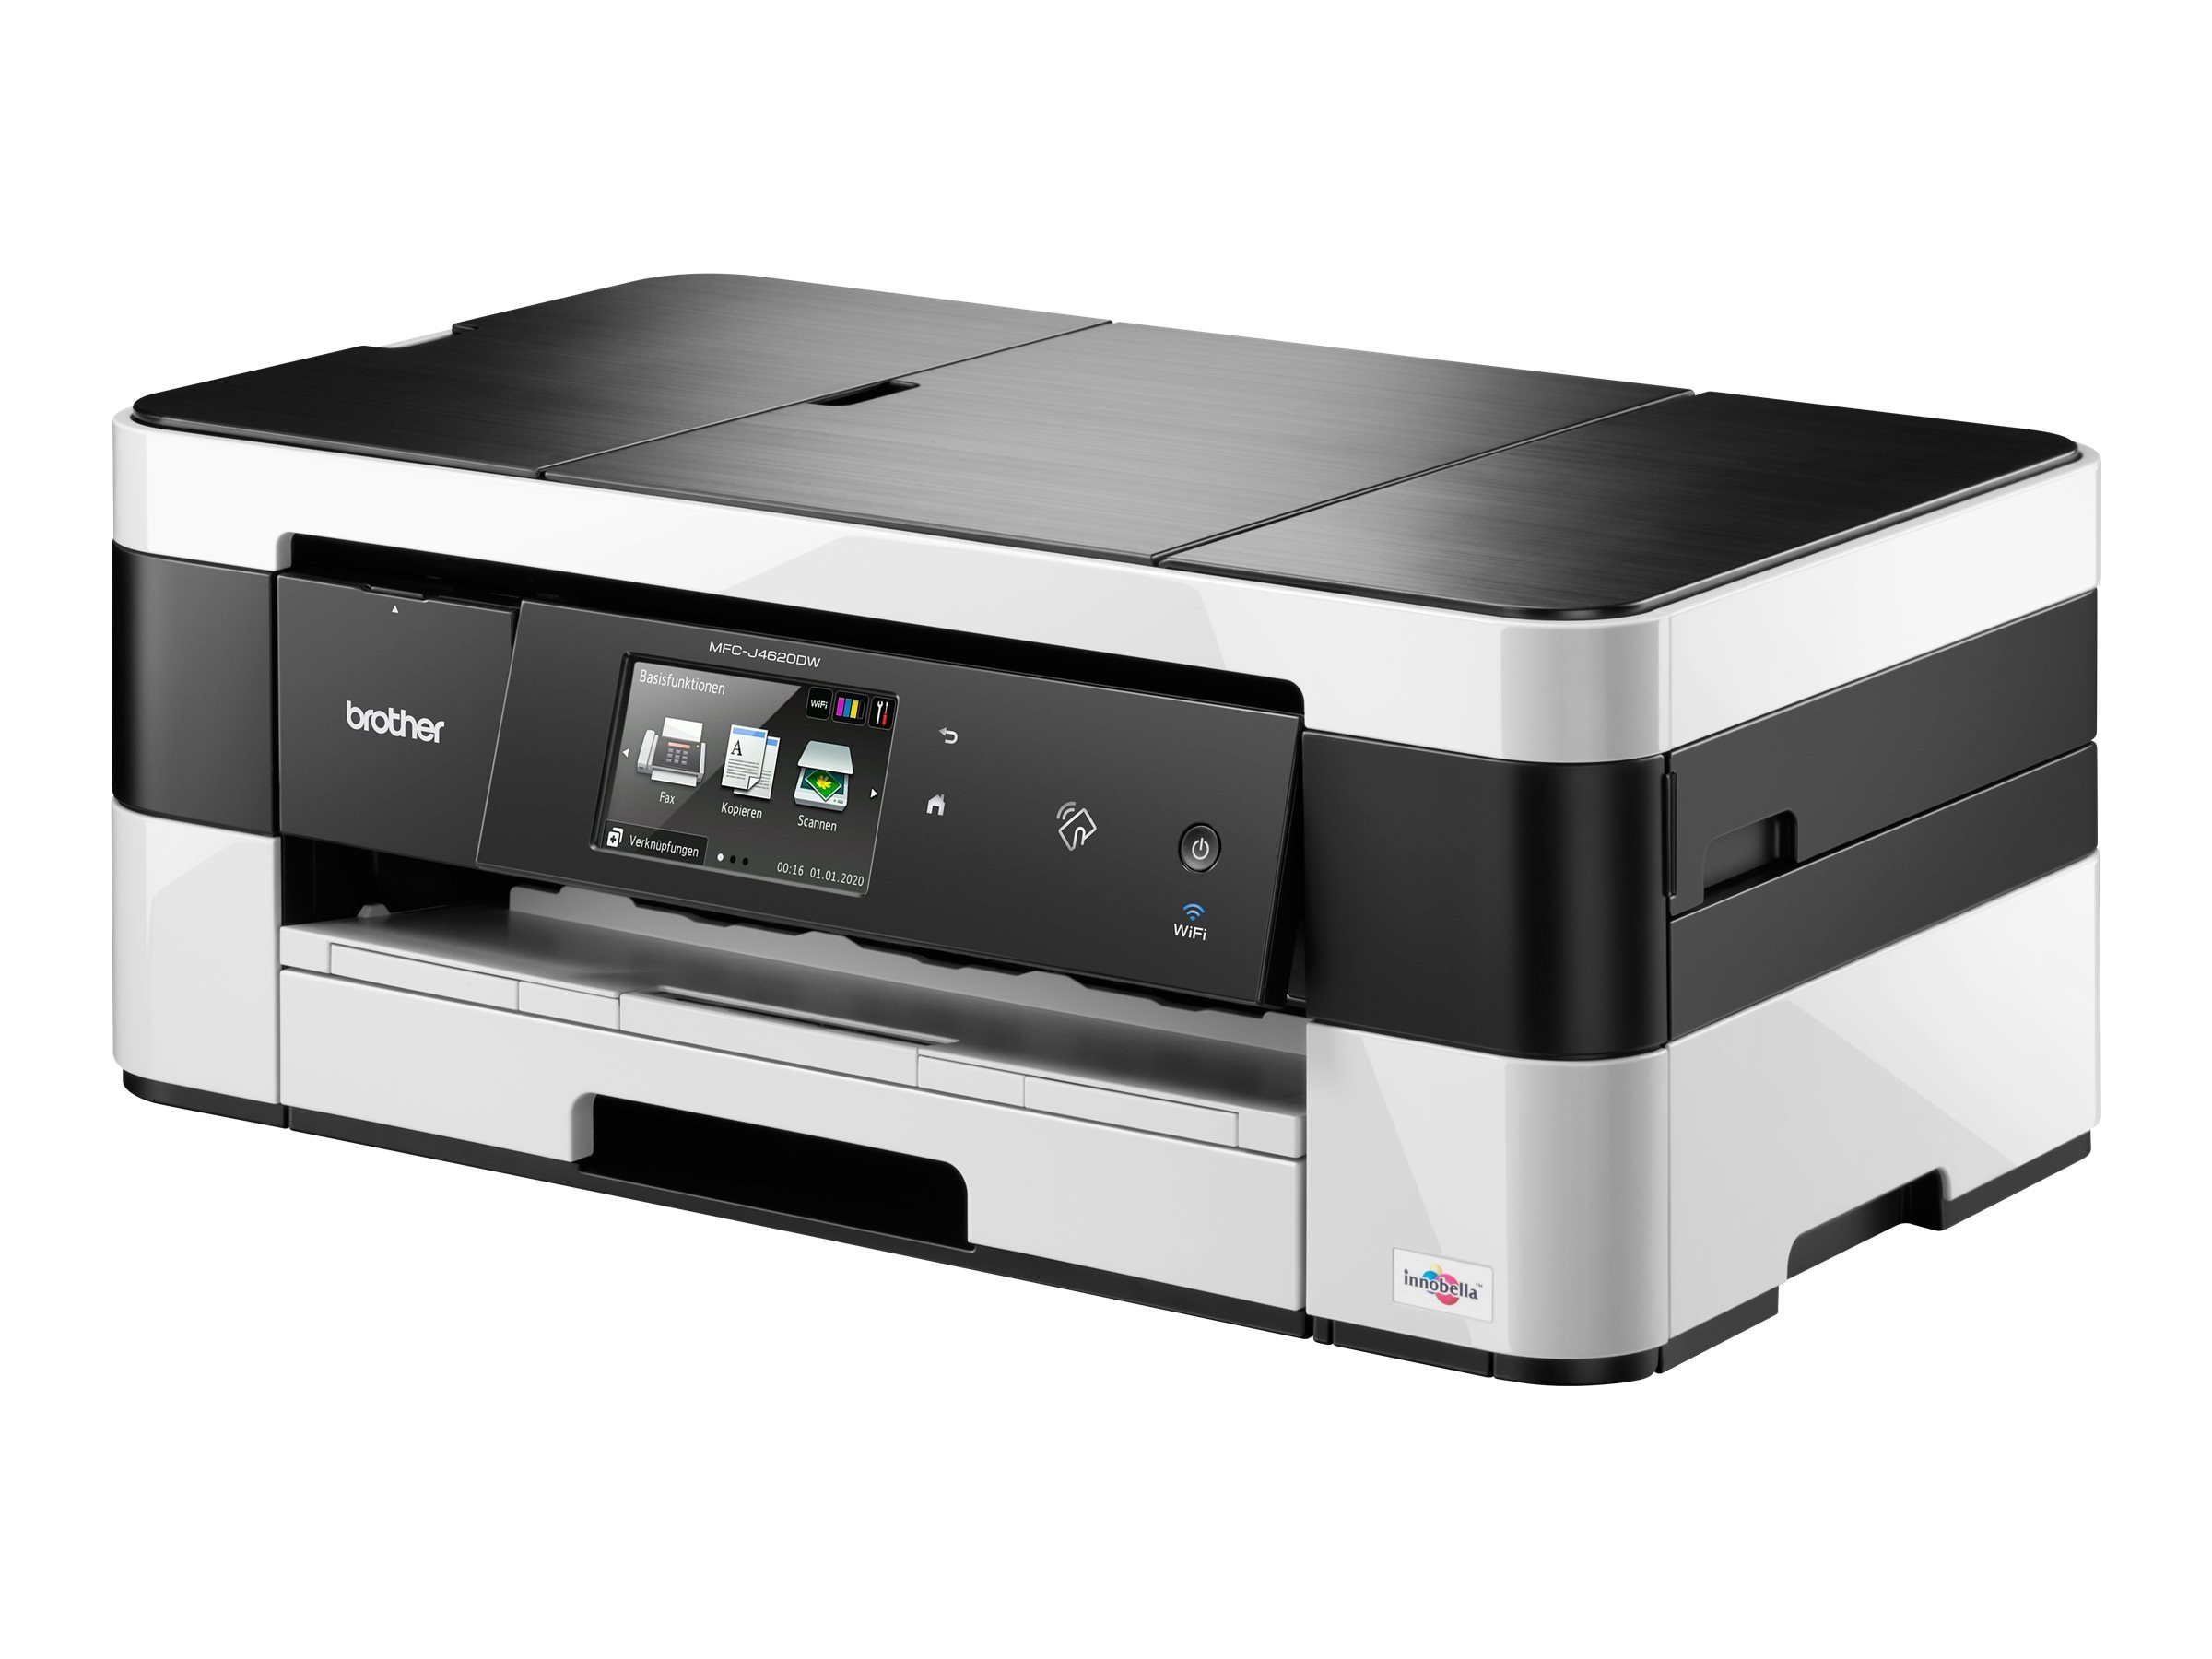 Brother MFC-J4620DW Business Smart Inkjet All-in-One